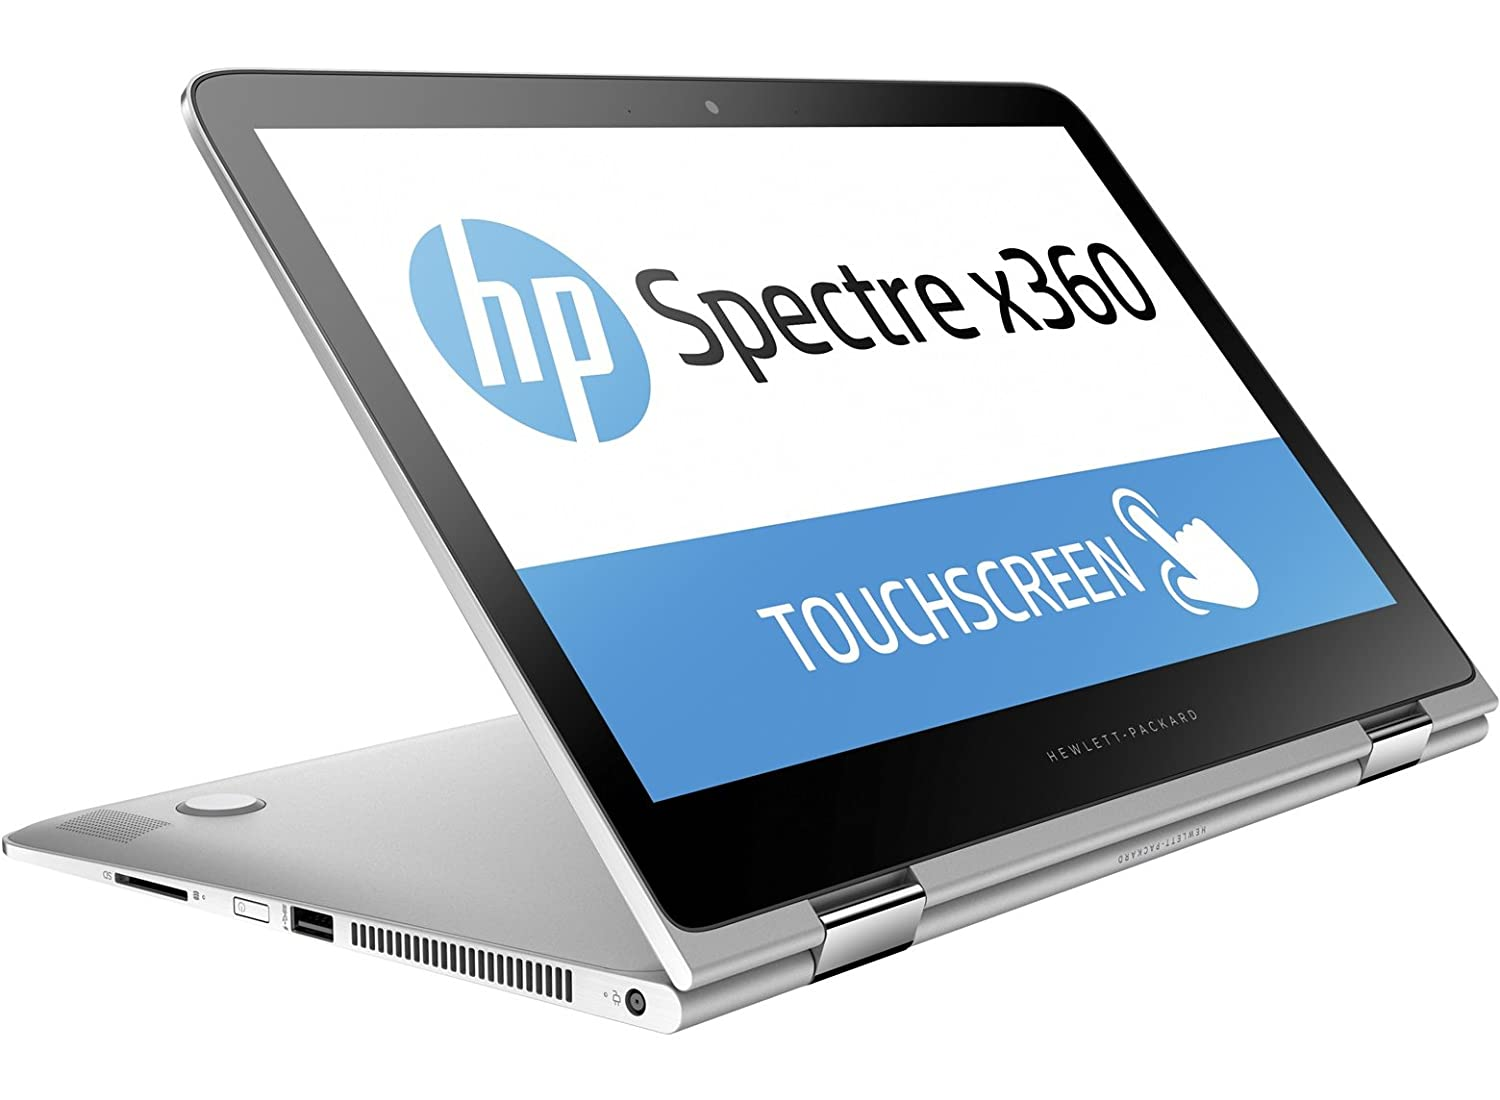 Amazon.com: HP Spectre x360 13-4005dx Signature Edition 2-in-1 PC - 13.3